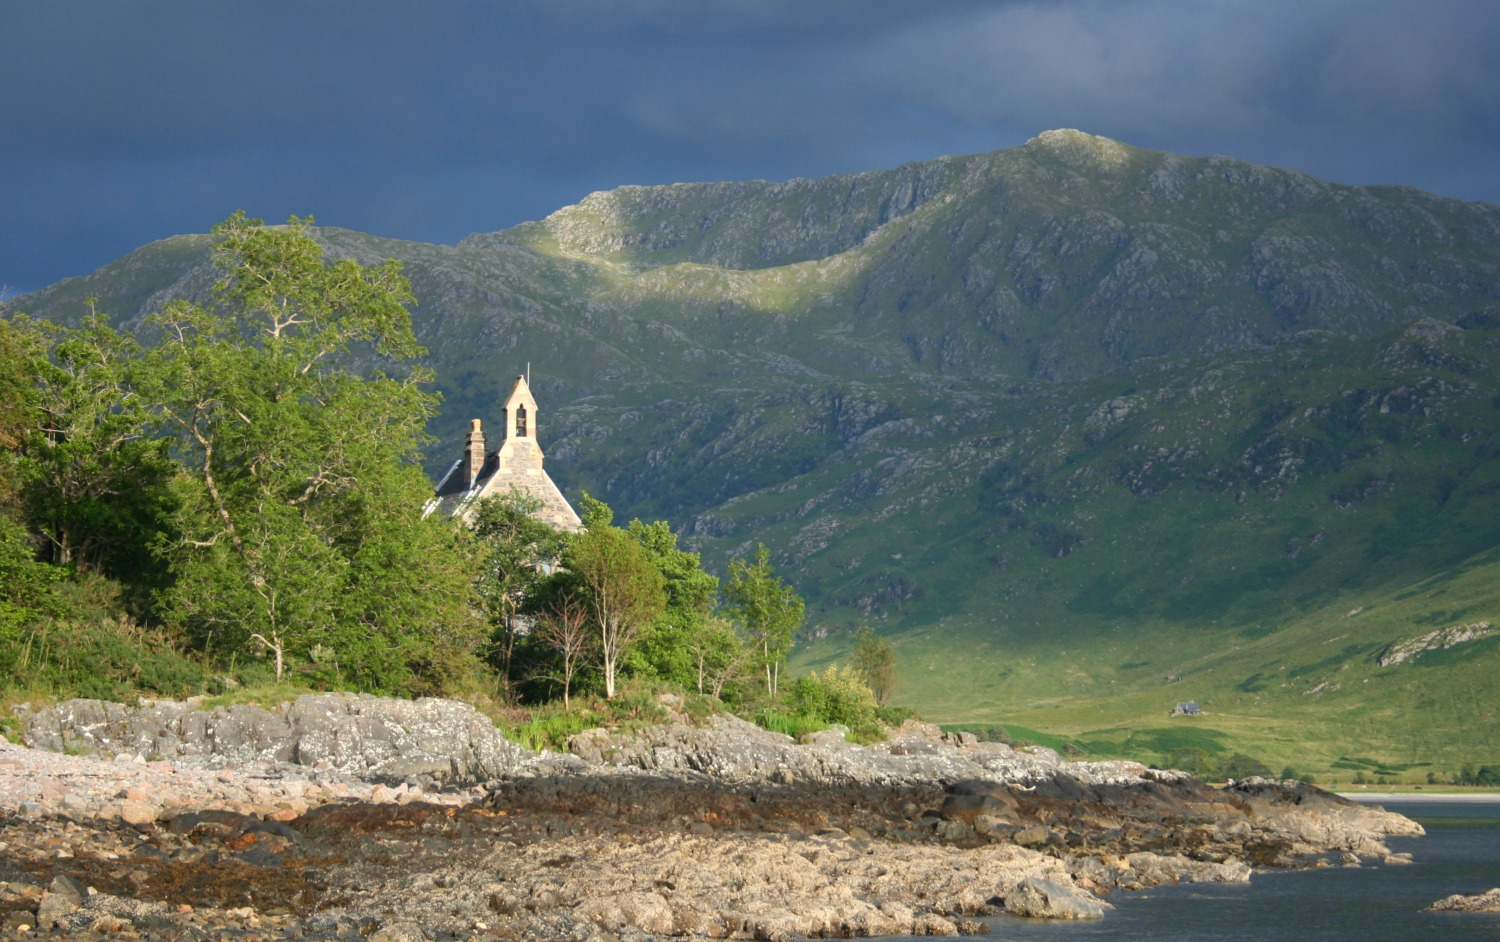 Knoydart, more specifically the little shoreline community of Inverie, has a reputation for remoteness, but is quite easily reached by boat from Mallaig.